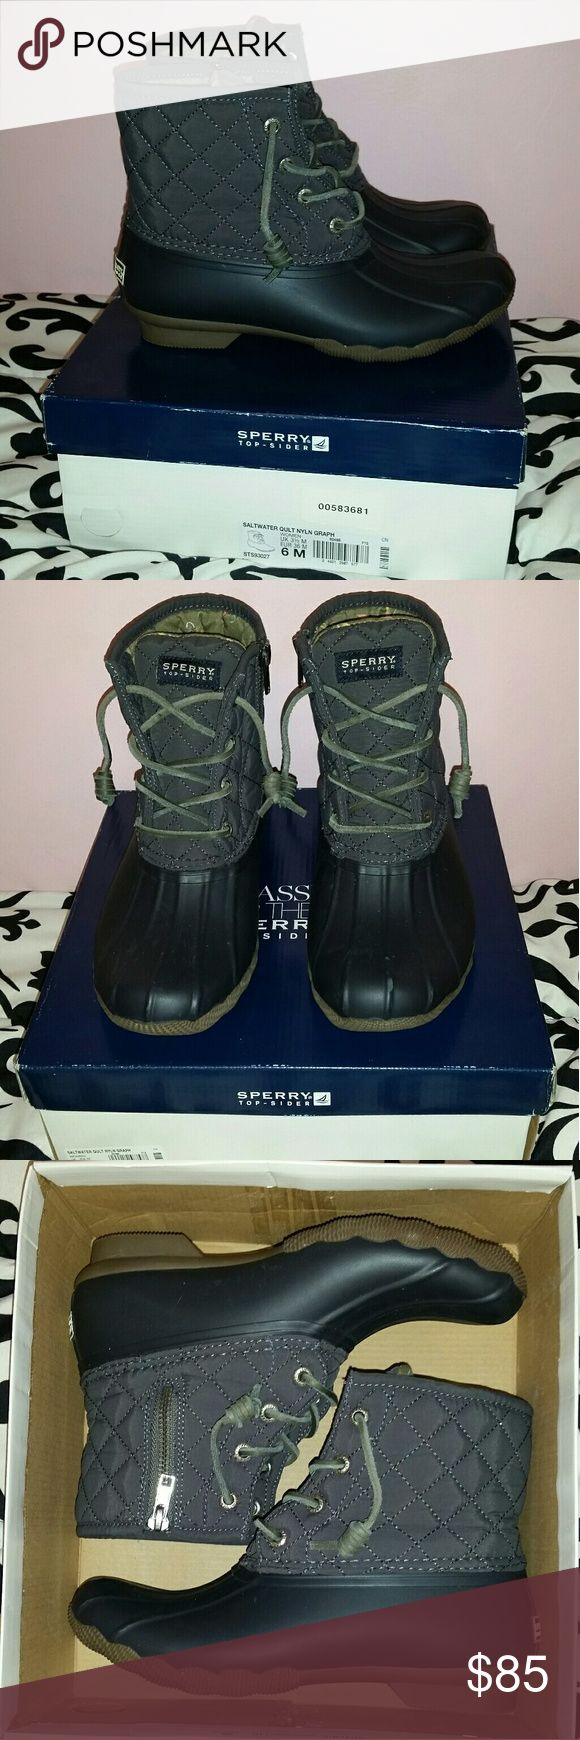 Sperry Saltwater Duck Boots I LOVE these boots but I ordered a half size too small so I need to resell. They were only worn a few times and look brand new! Feel free to offer! Sperry Top-Sider Shoes Winter & Rain Boots